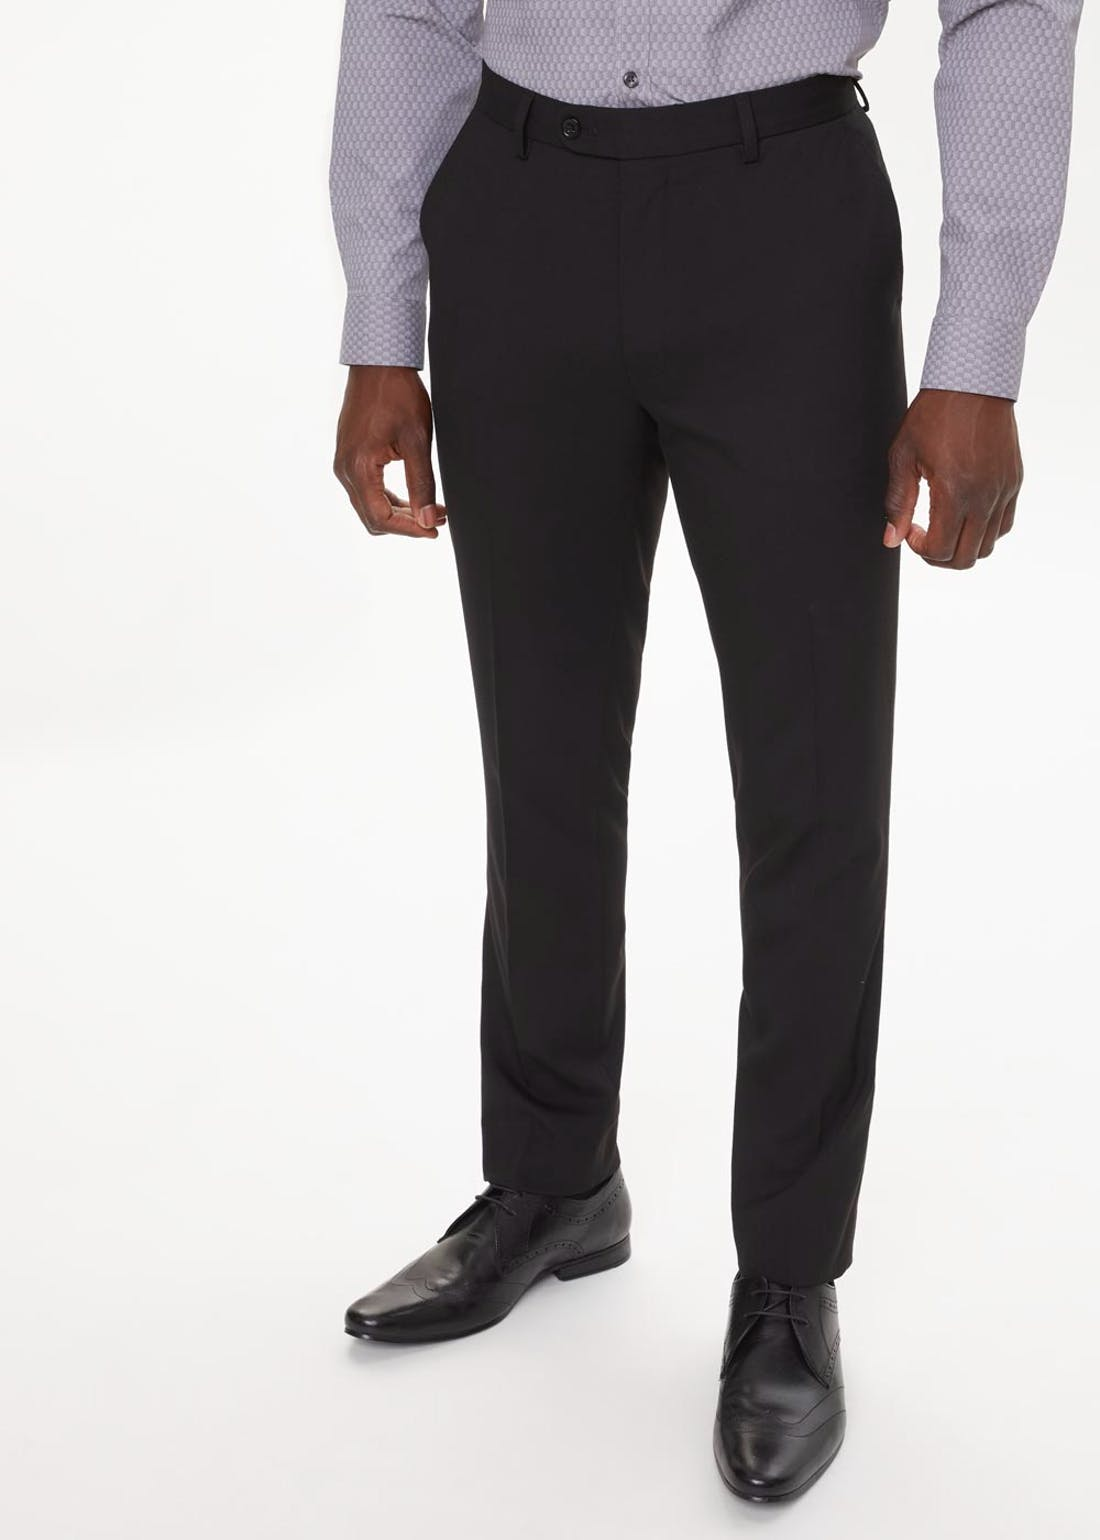 Taylor & Wright Skinny Stretch Formal Trousers